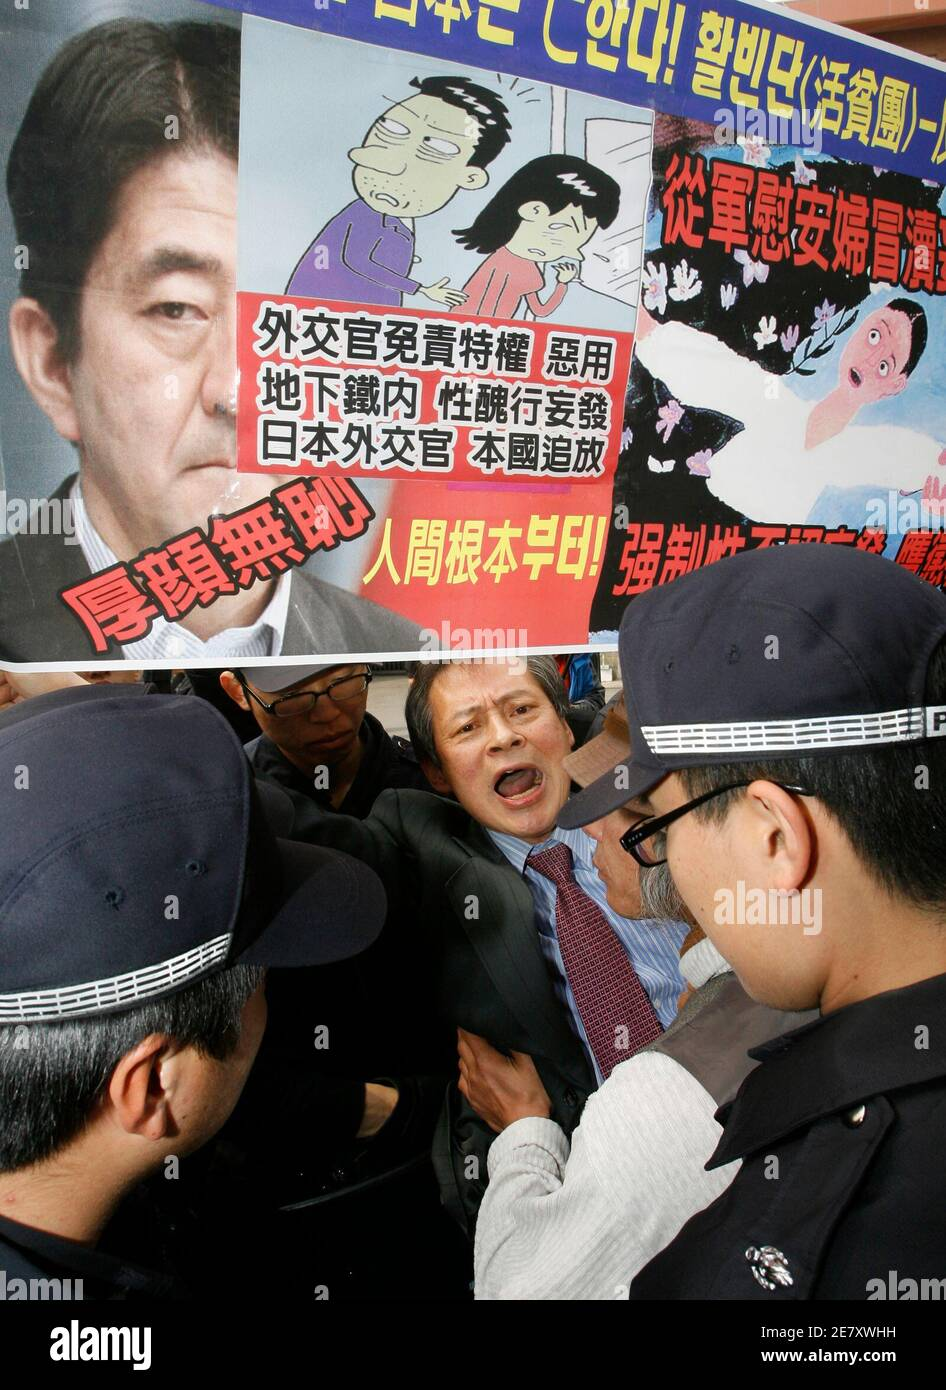 A protester shouts slogans during an anti-Japan protest denouncing a Japanese diplomat in front of the Japanese Embassy in Seoul March 26, 2007. A diplomat from the Japanese embassy in Seoul was suspected of disgraceful conduct to a female South Korean college student in a subway train last Thursday, according to local media which cited South Korean police. The Japanese diplomat has denied the wrongdoing. The banner reads: Japan will go to ruins if it continues to do a wrong act. Repatriate the diplomat to Japan.  REUTERS/Jo Yong-Hak (SOUTH KOREA) Stock Photo